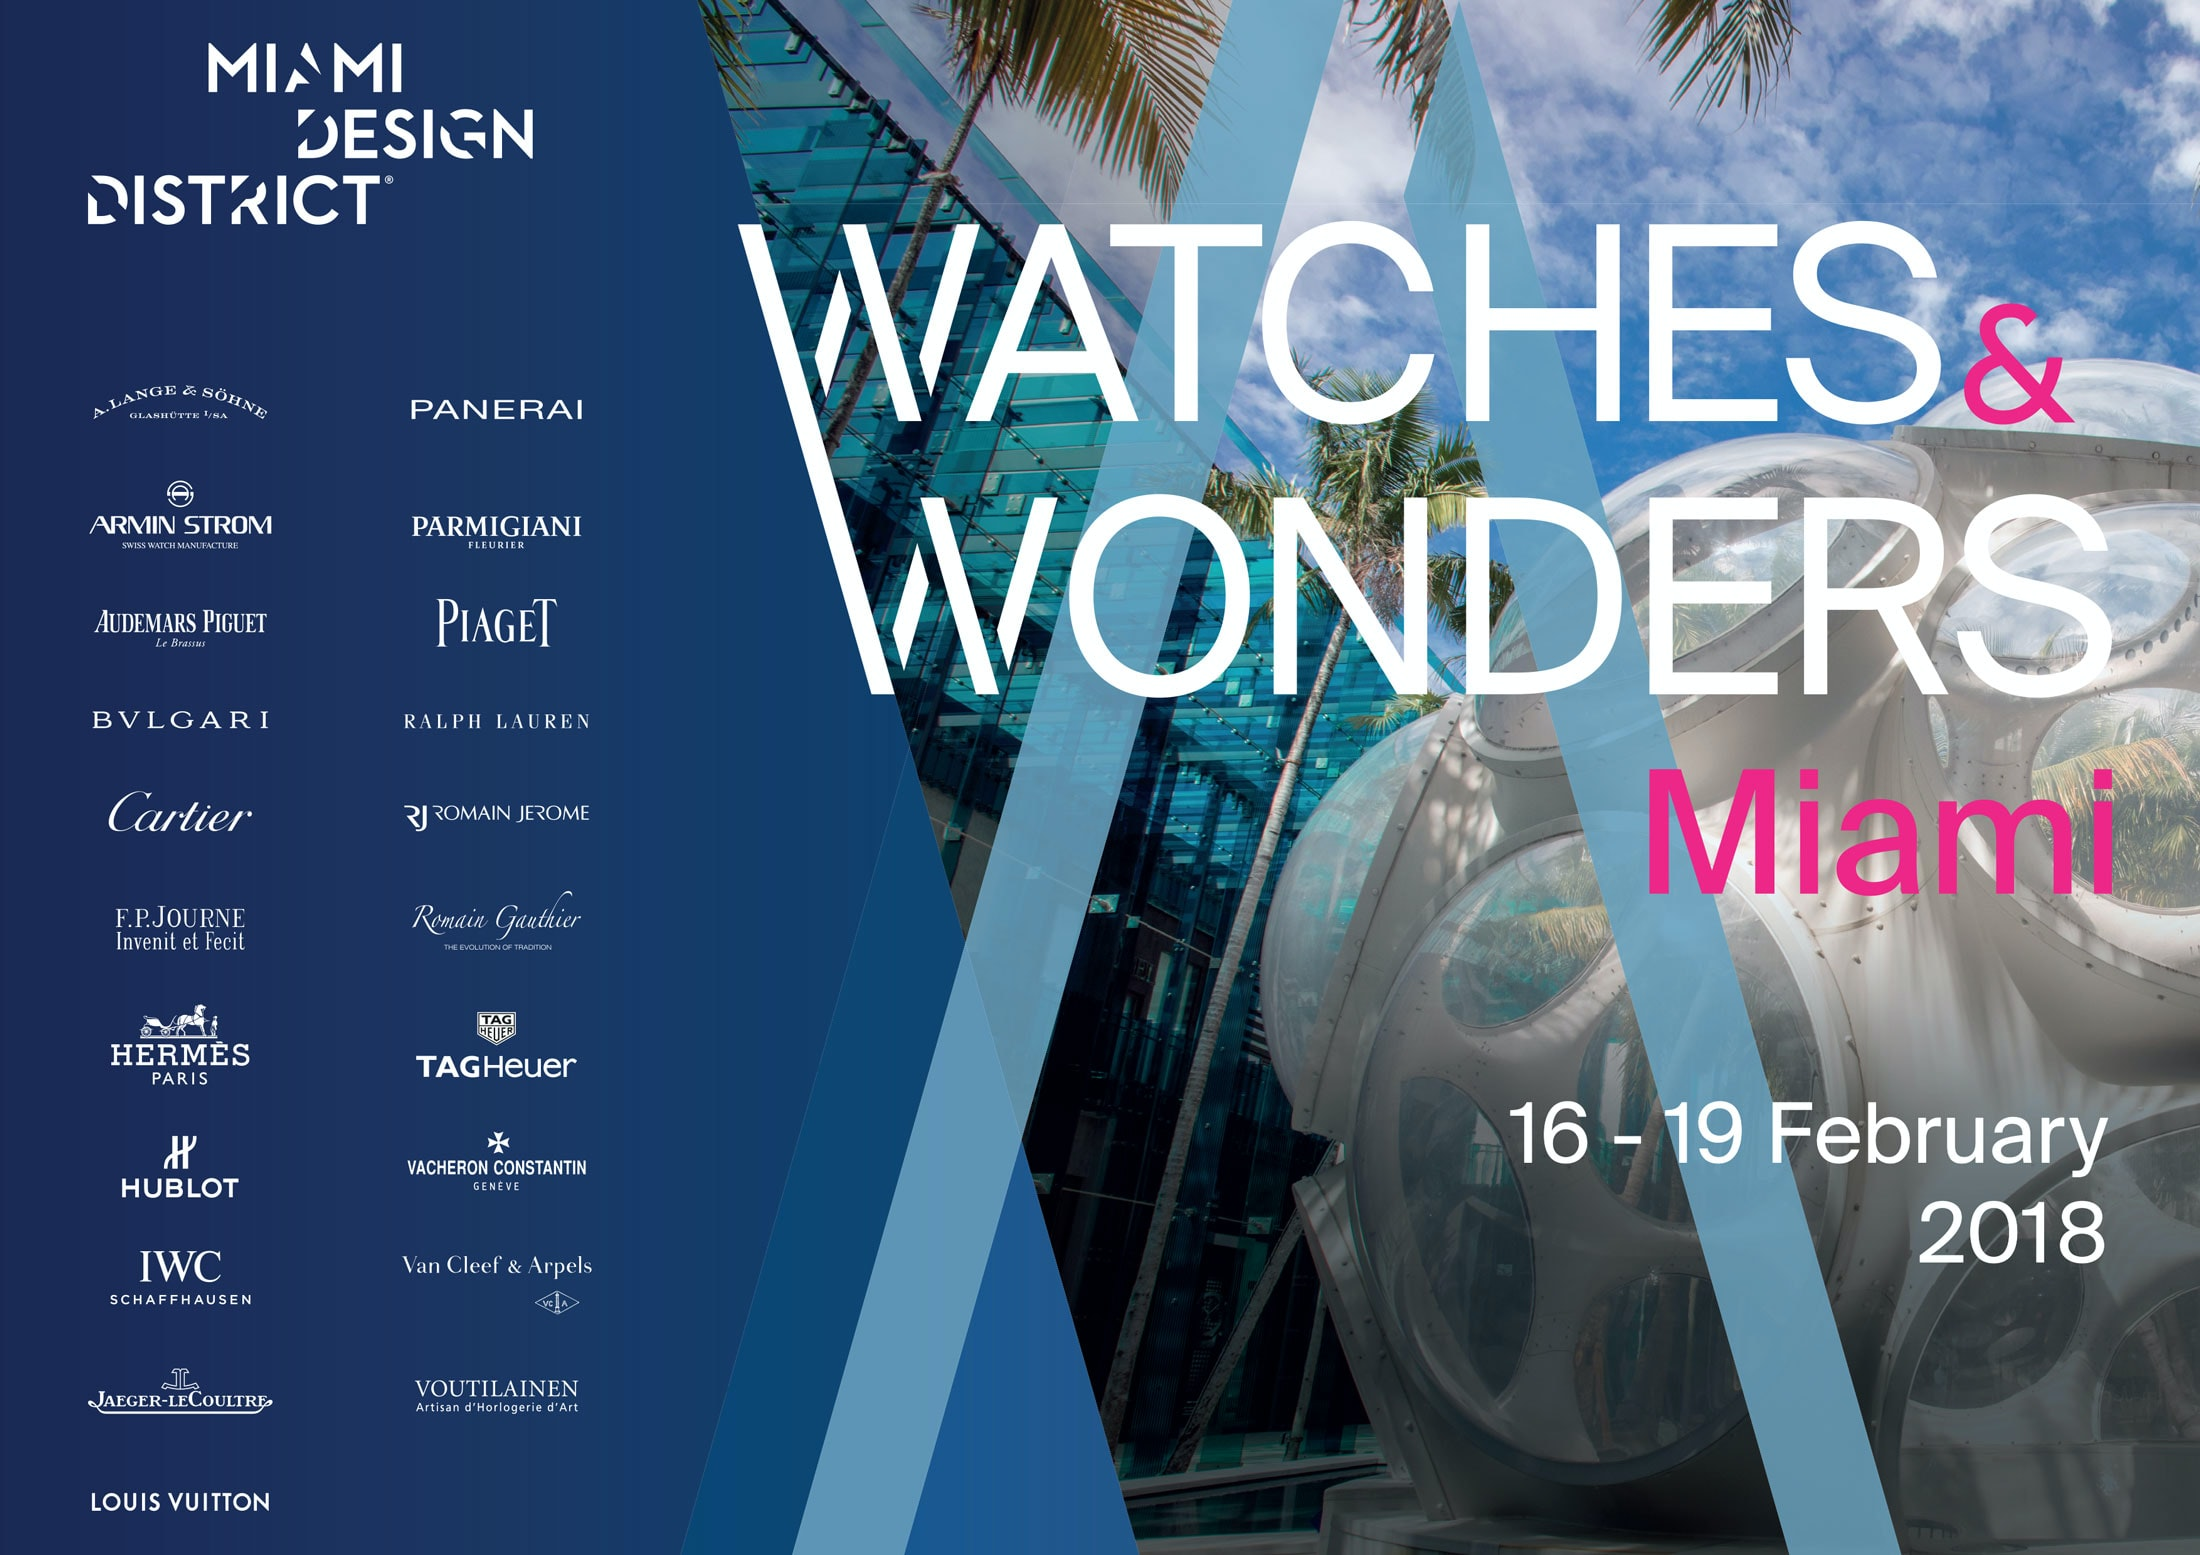 watches and wonders miami  Happenings: Join Us For The First-Ever Watches & Wonders Miami, At The Miami Design District In February 2018 miami